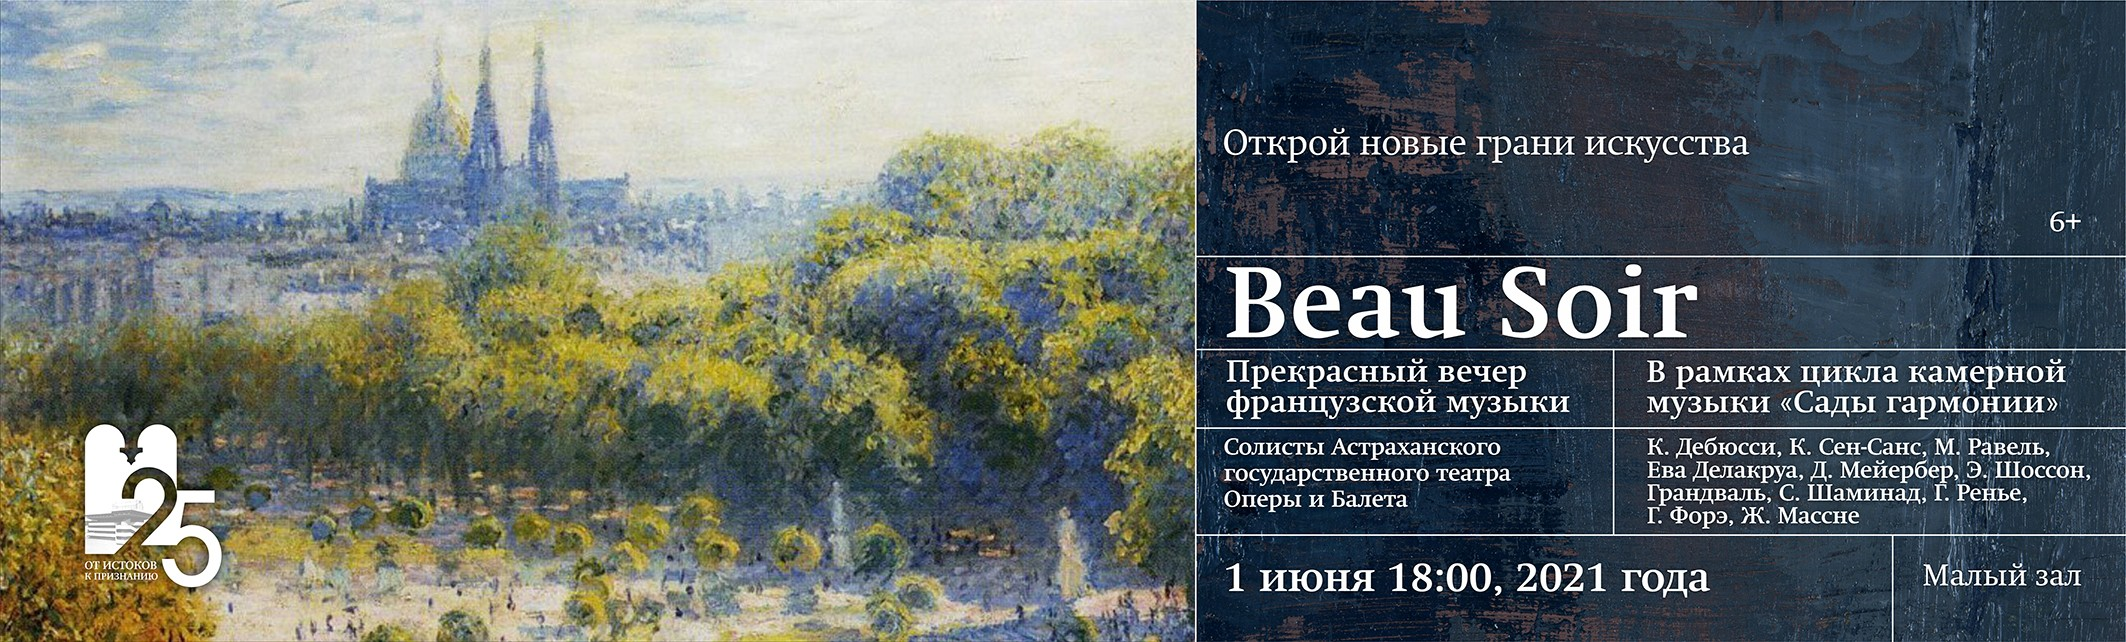 "Концерт Сады гармонии.""Beau Soir"". Вечер французской музыки."